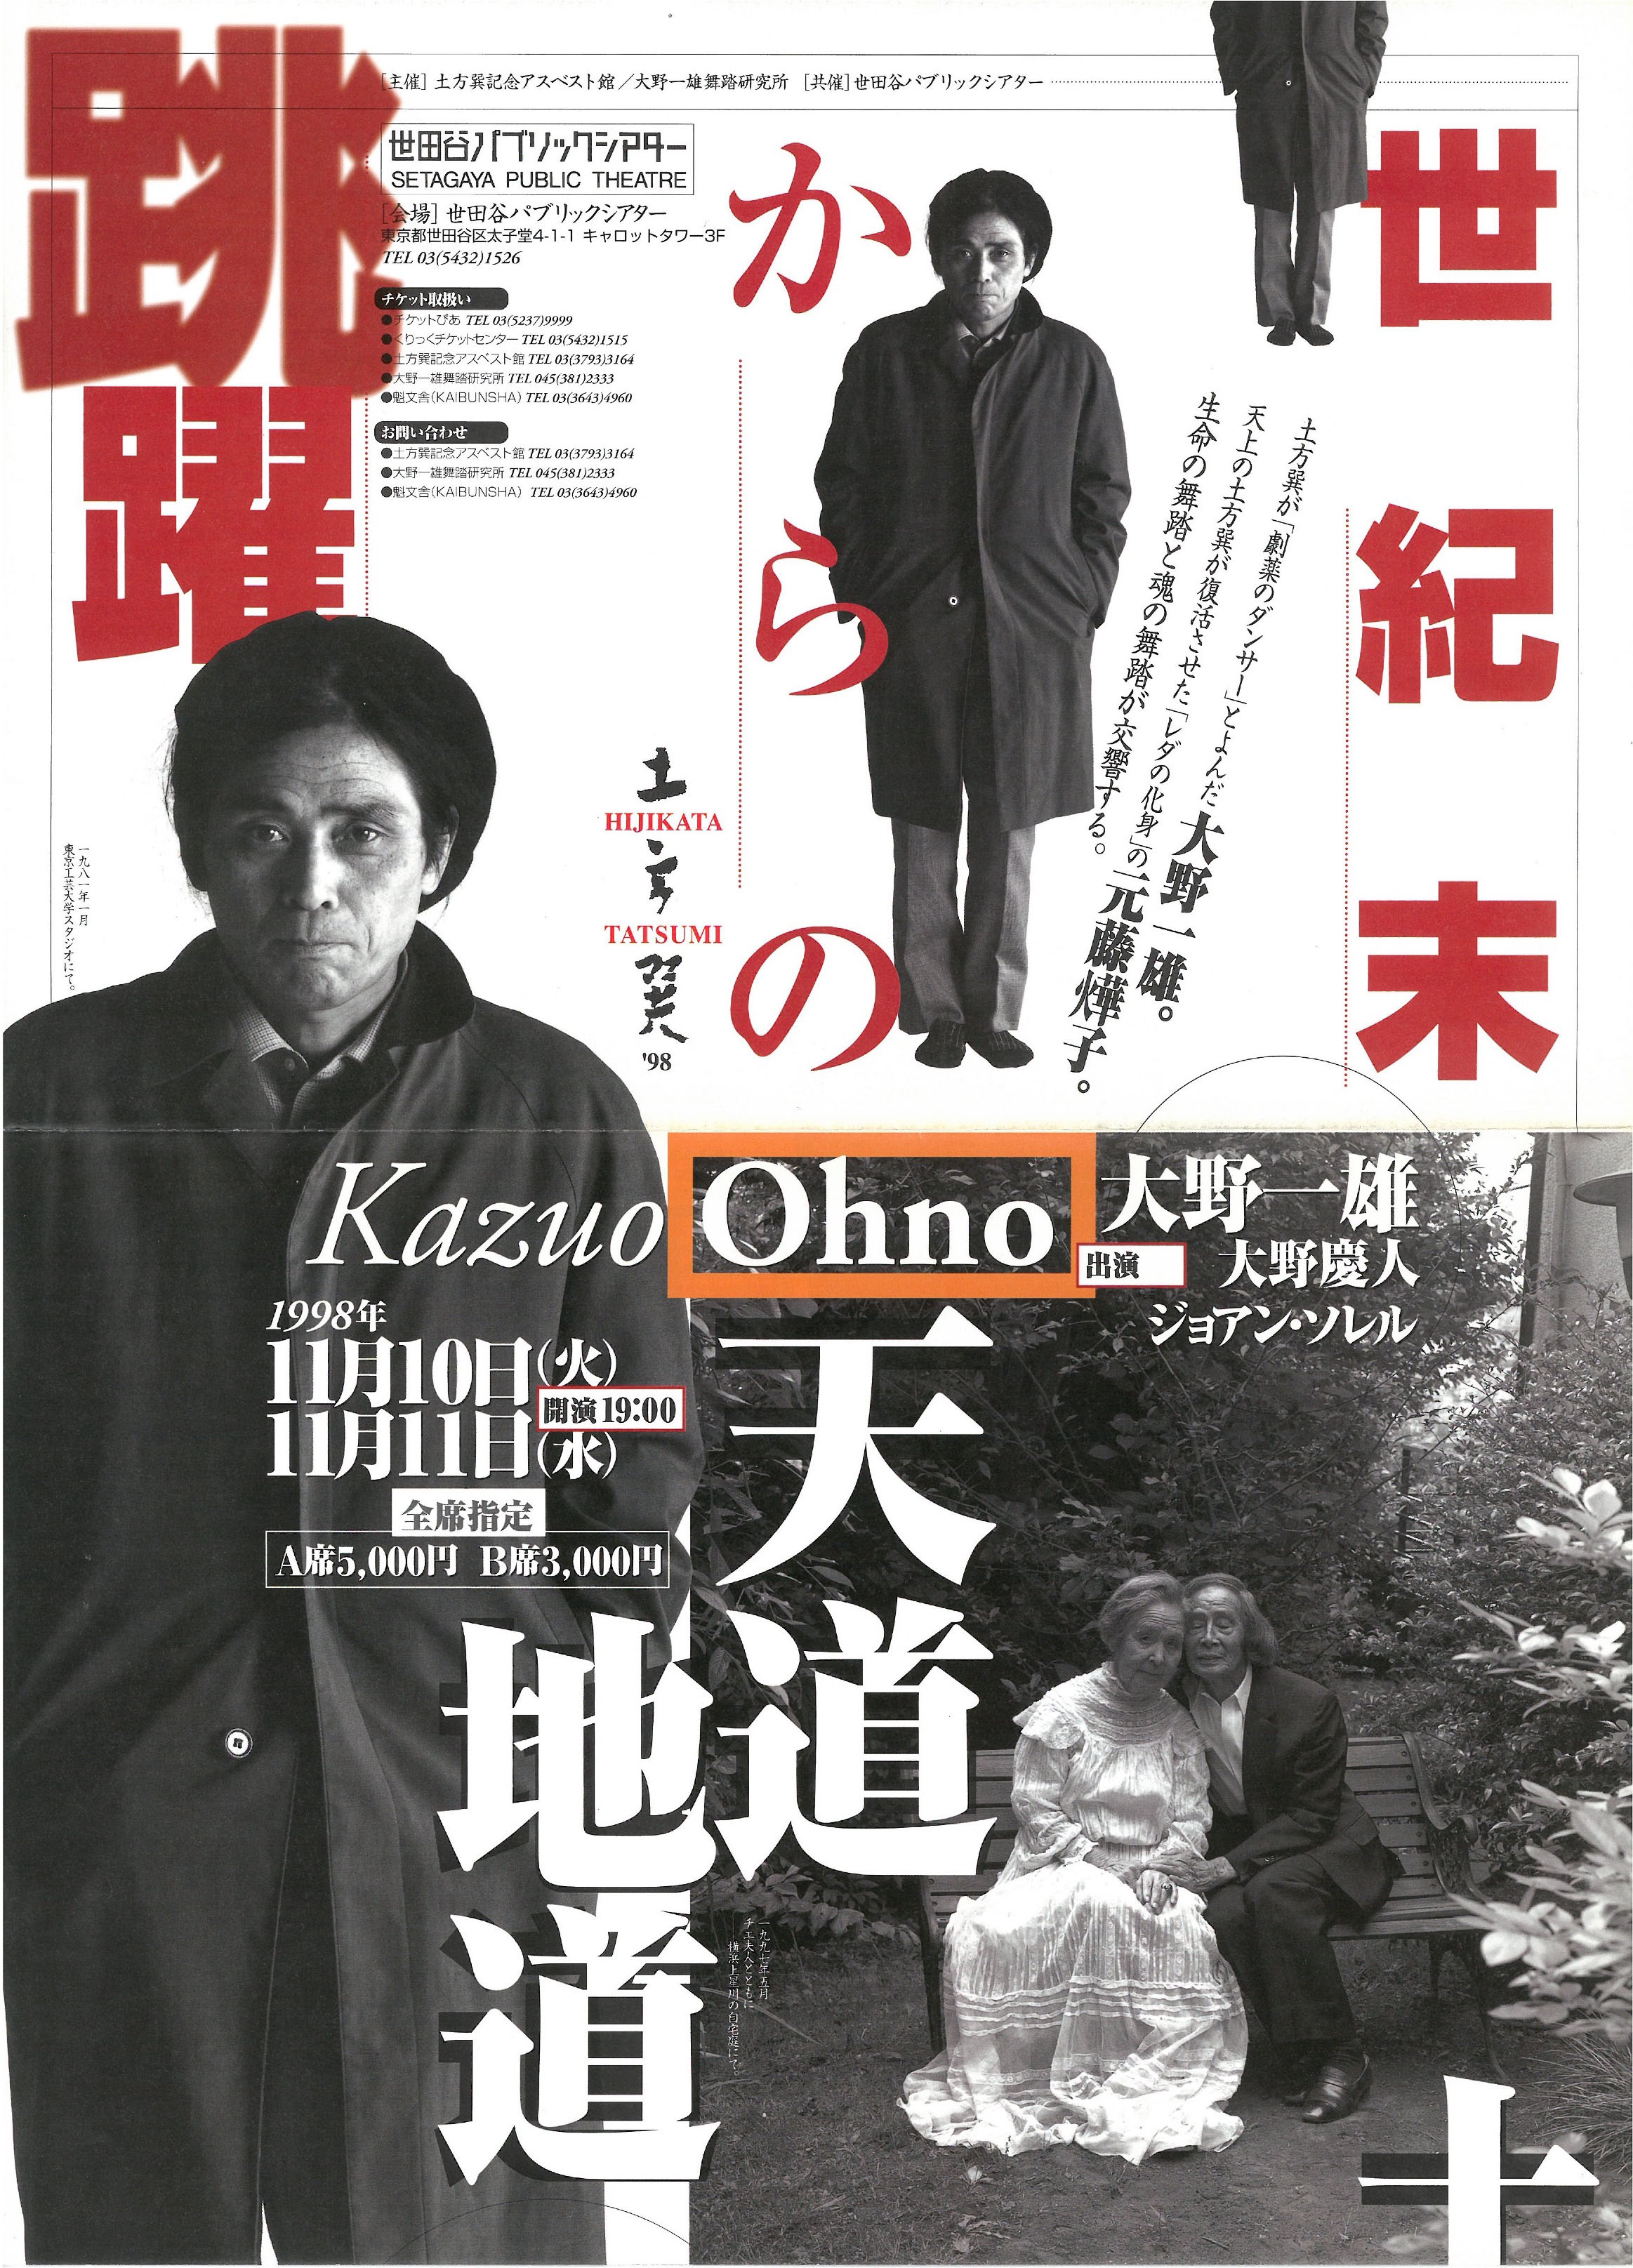 """Butoh: with all the nerves and the soul "",  The Origin of Butoh III (Symposium) [Program, p1]"